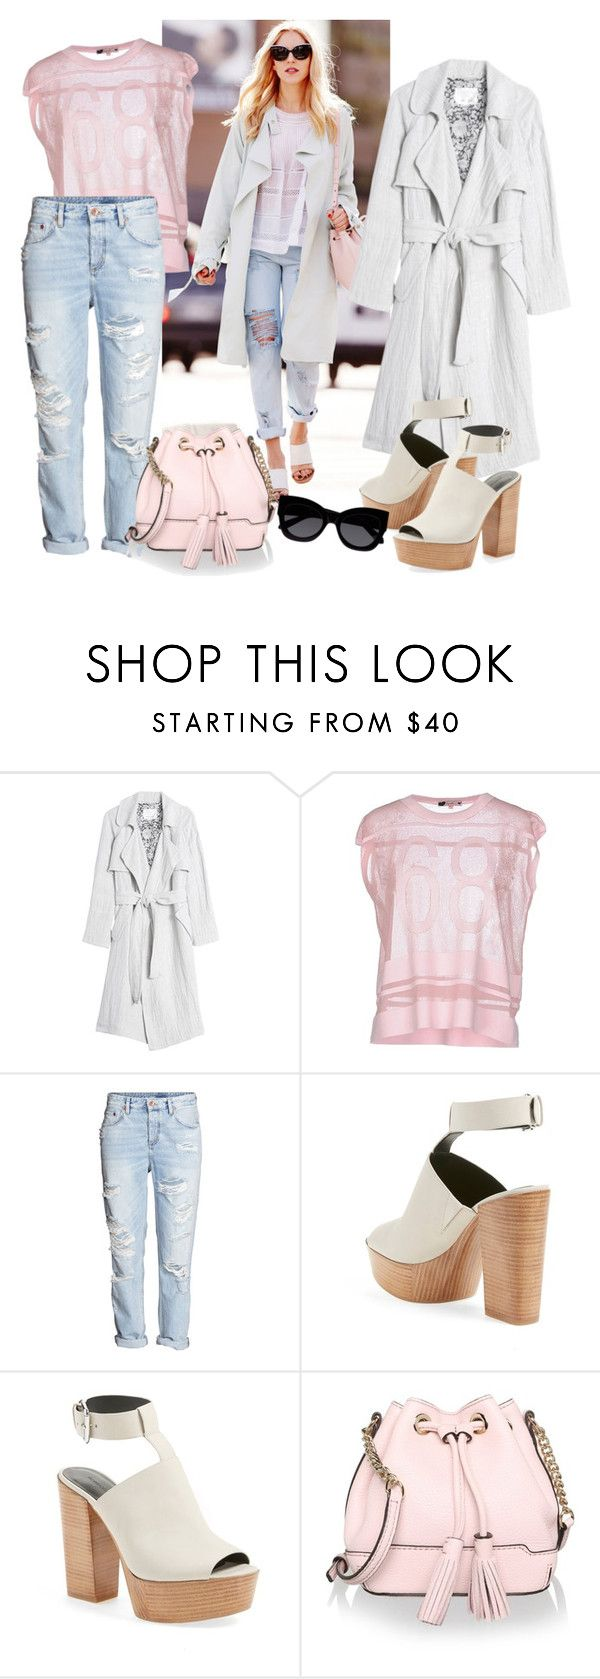 """""""Spring Up"""" by gangdise ❤ liked on Polyvore featuring Rebecca Taylor, Baguette....., H&M, Rebecca Minkoff and Karen Walker"""